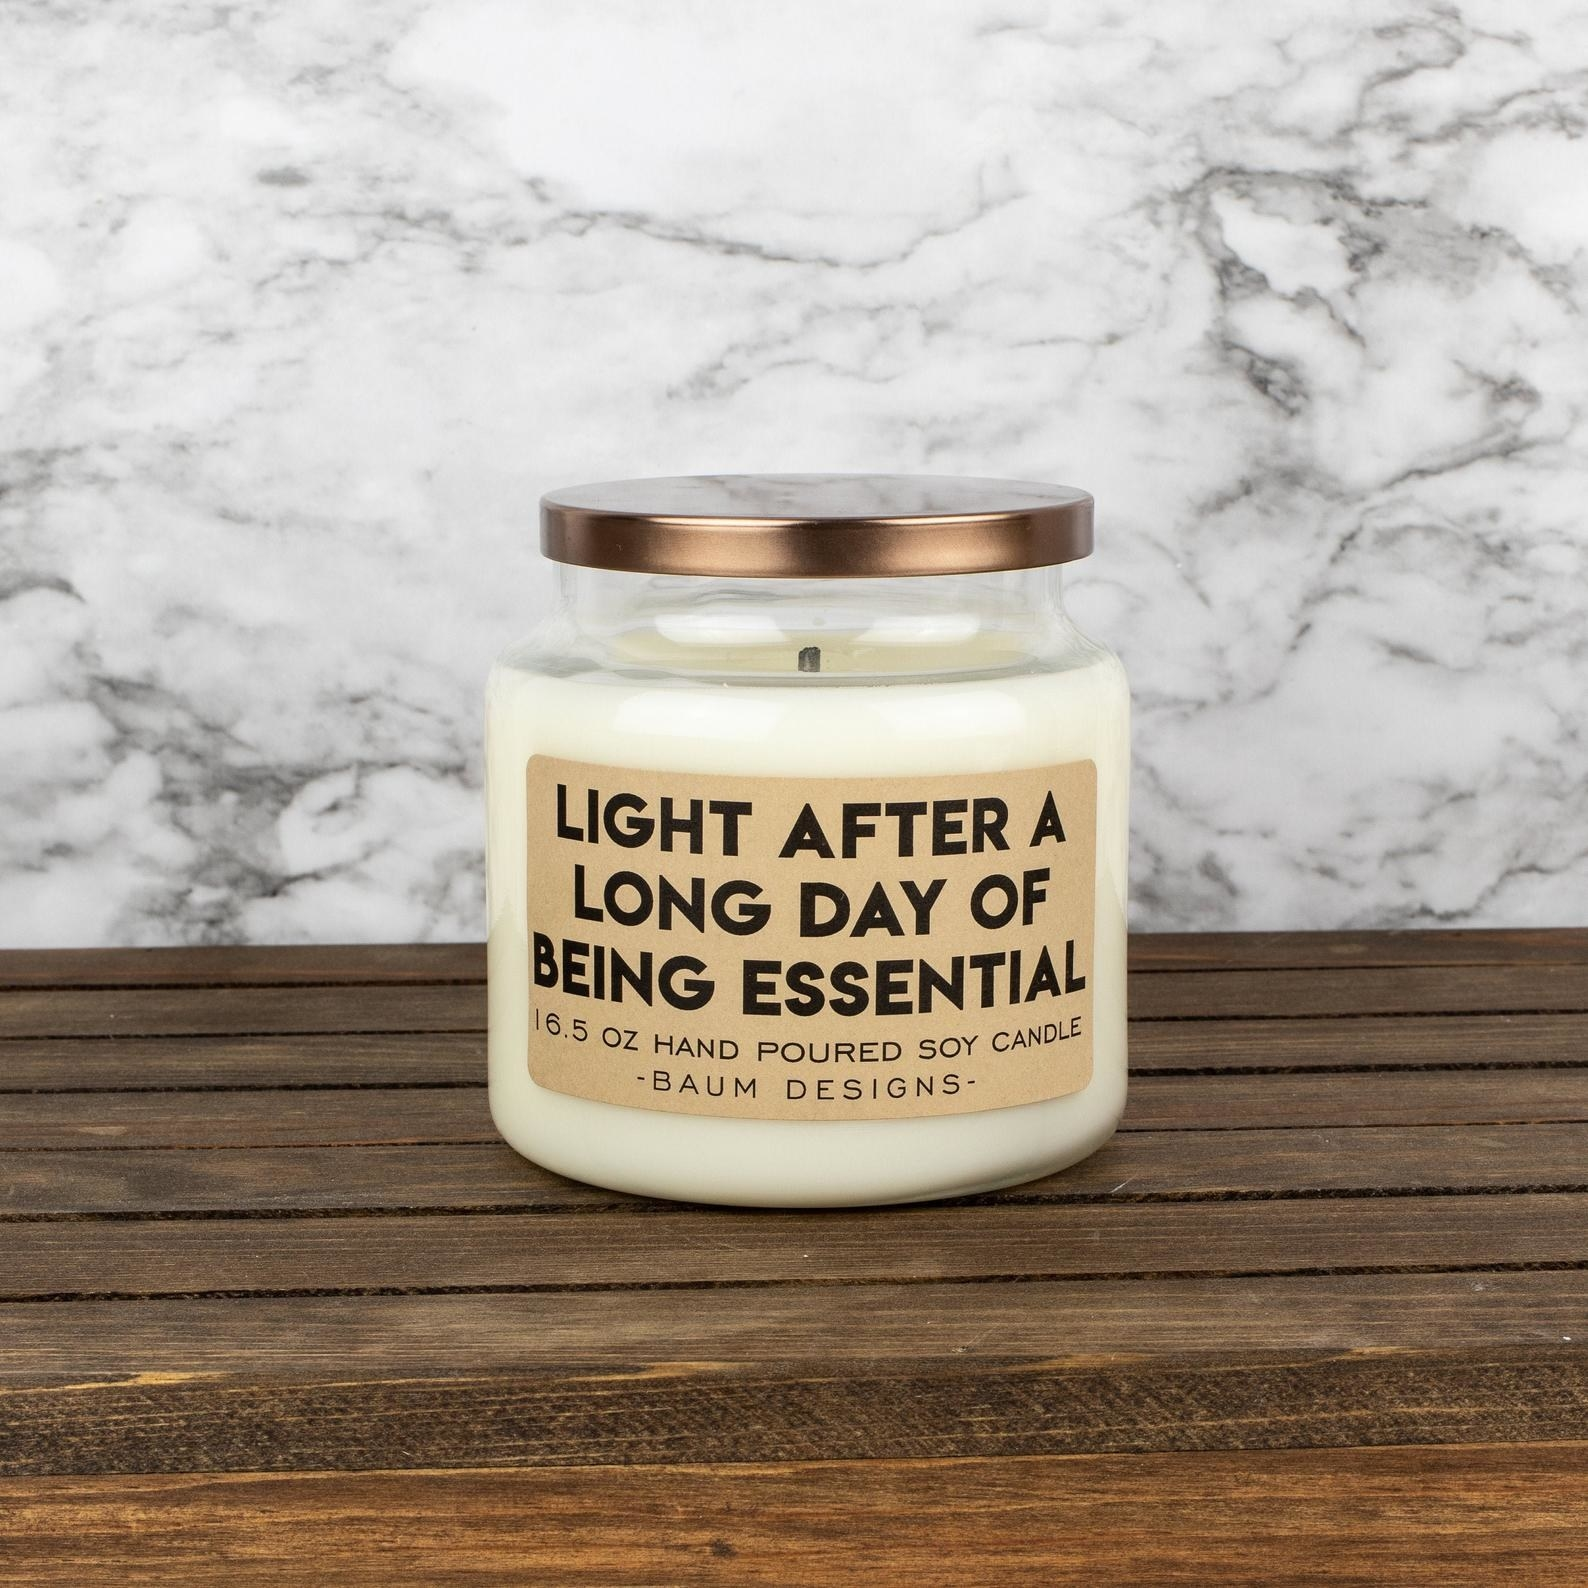 """A candle that says """"Light after a long day of being essential"""" on the front. It has a twist-off lid."""